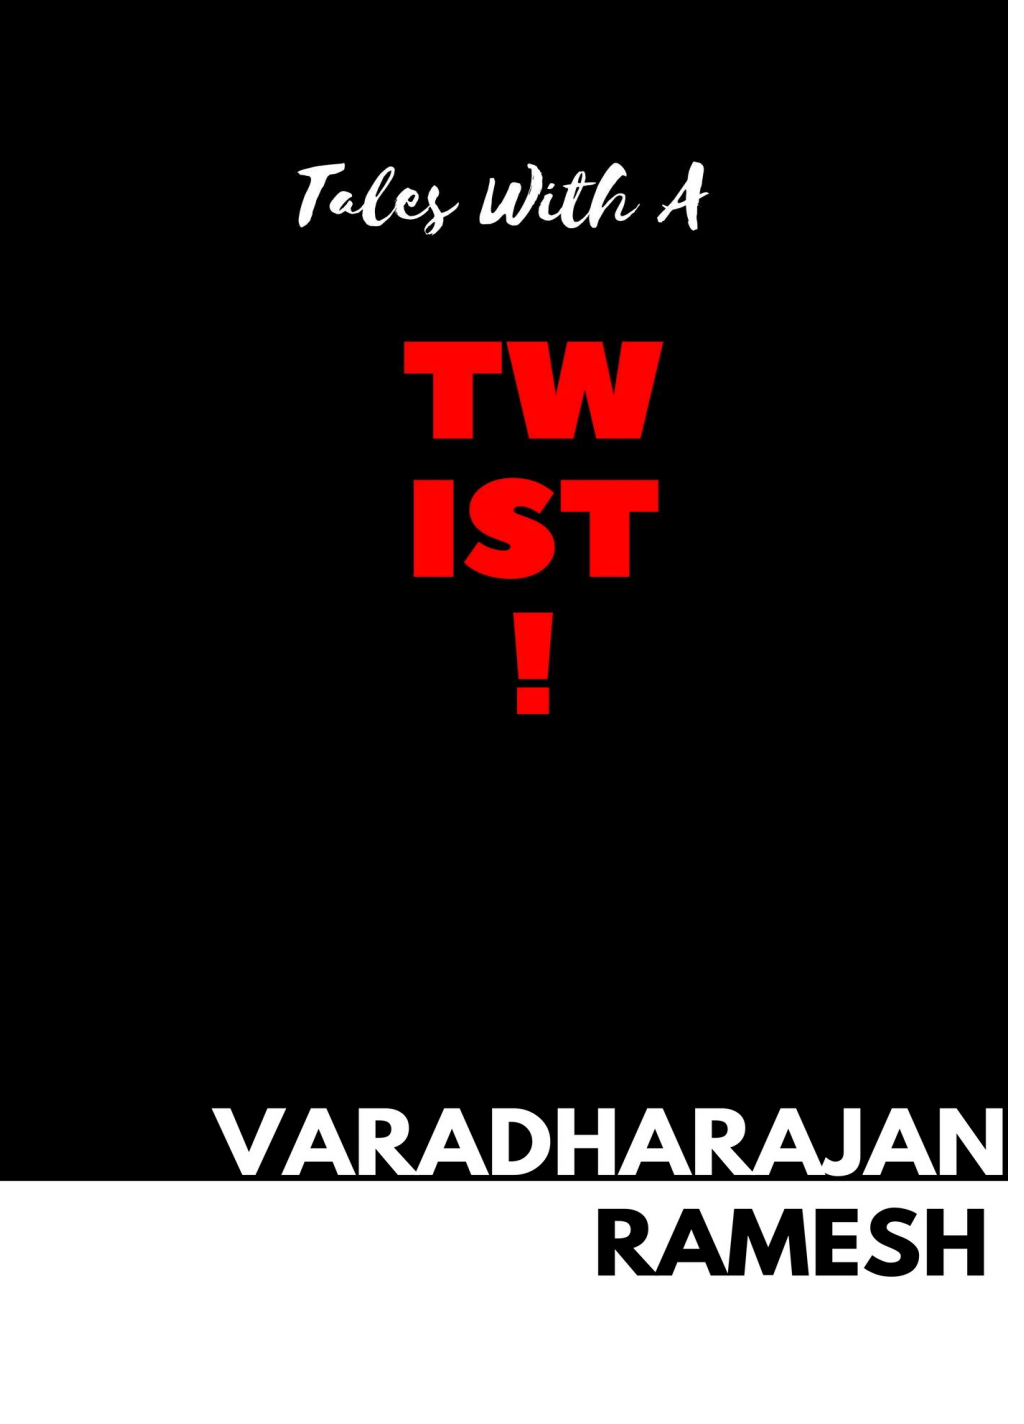 Book review – Tales with a Twist by Varadharajan Ramesh